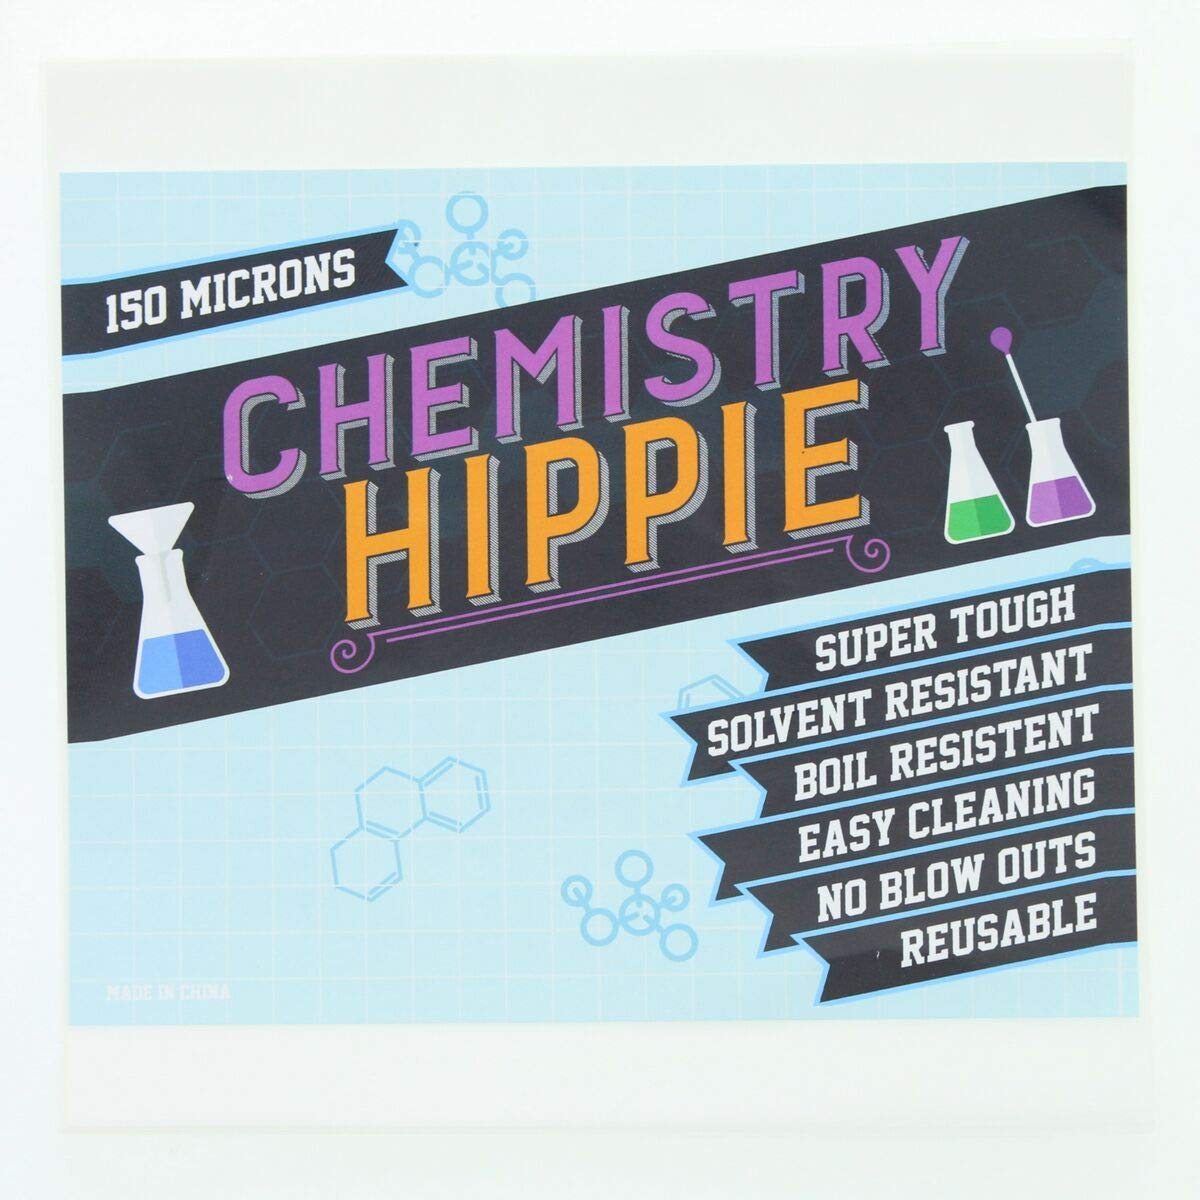 Chemistry Hippie   150 Micron Pressing Screens 6-pack   Essential Oil Concentrate Press Filter   5x5 Inch Screen Sheets